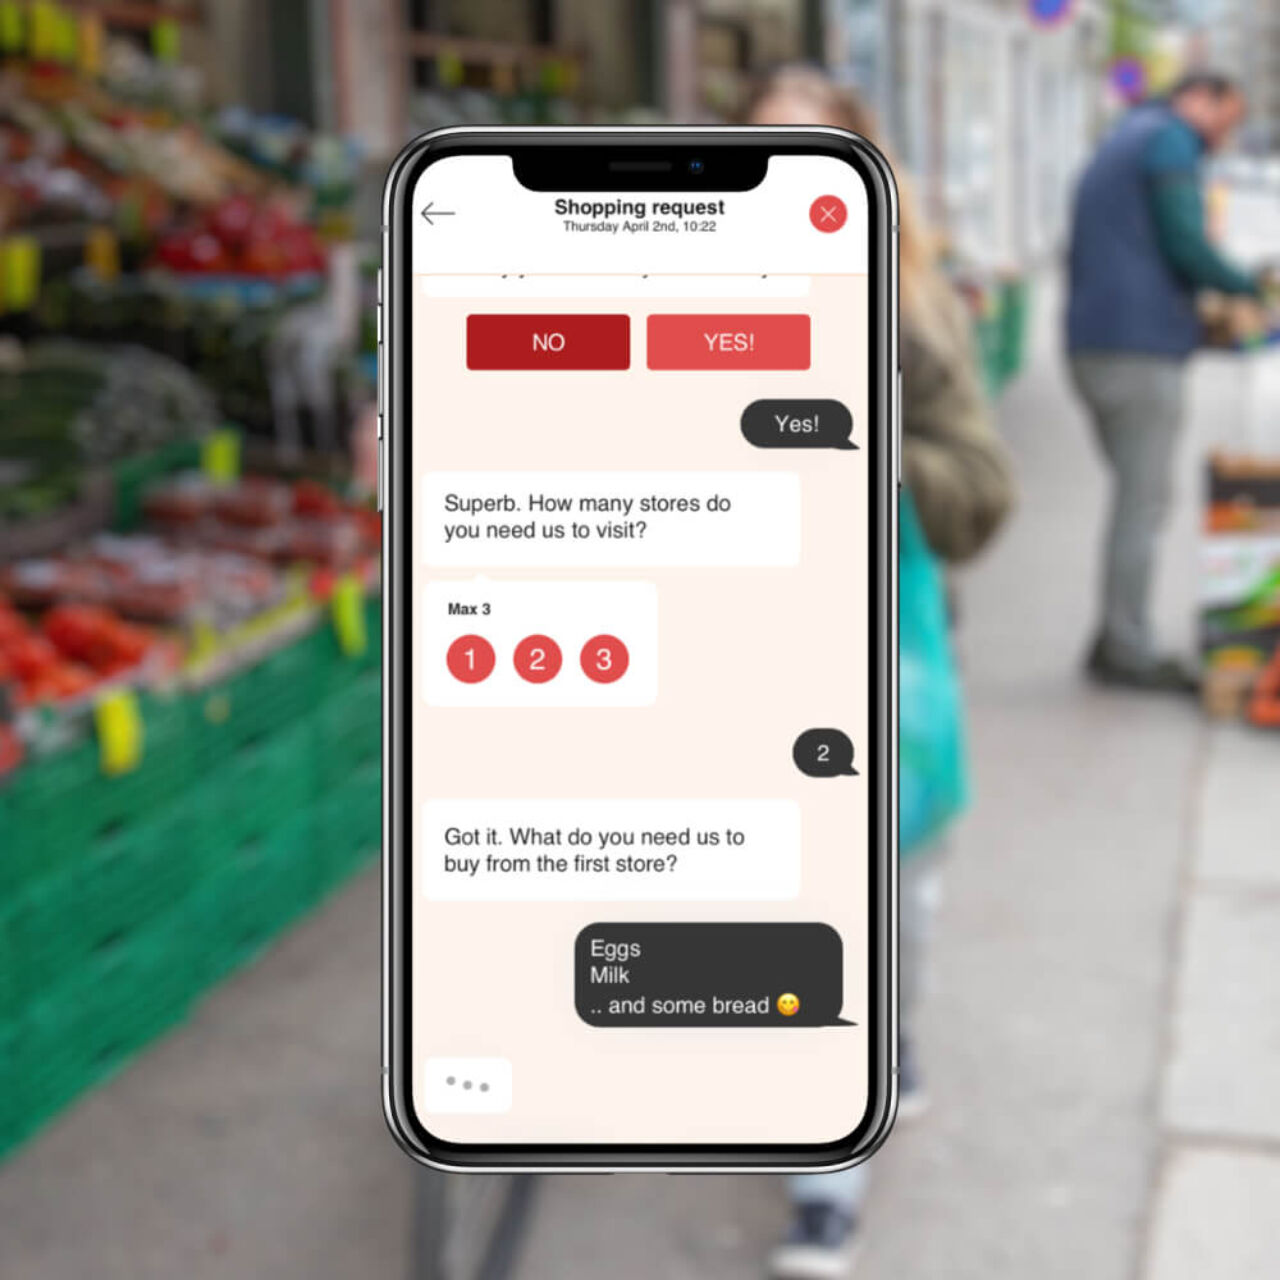 Norwegian Delivery Service App - Shopping request